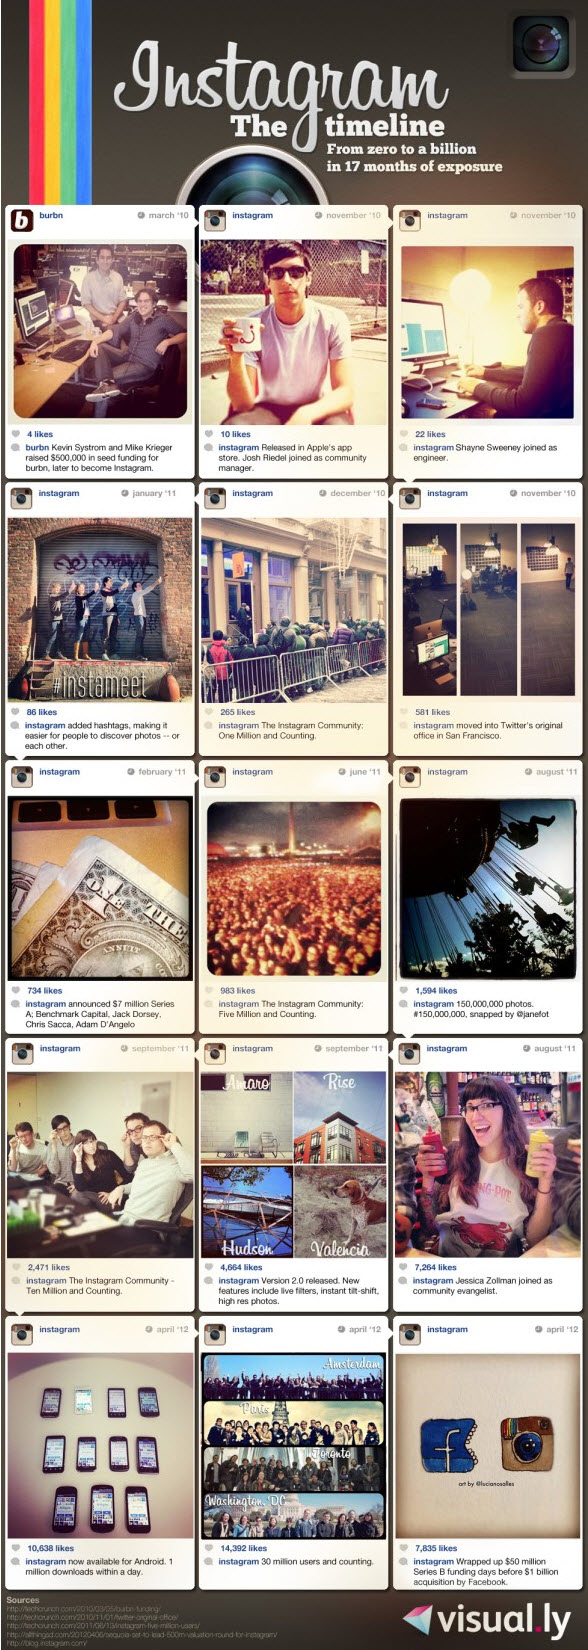 Instagram-2012-Infographic-Facts-Figures-and-statistics